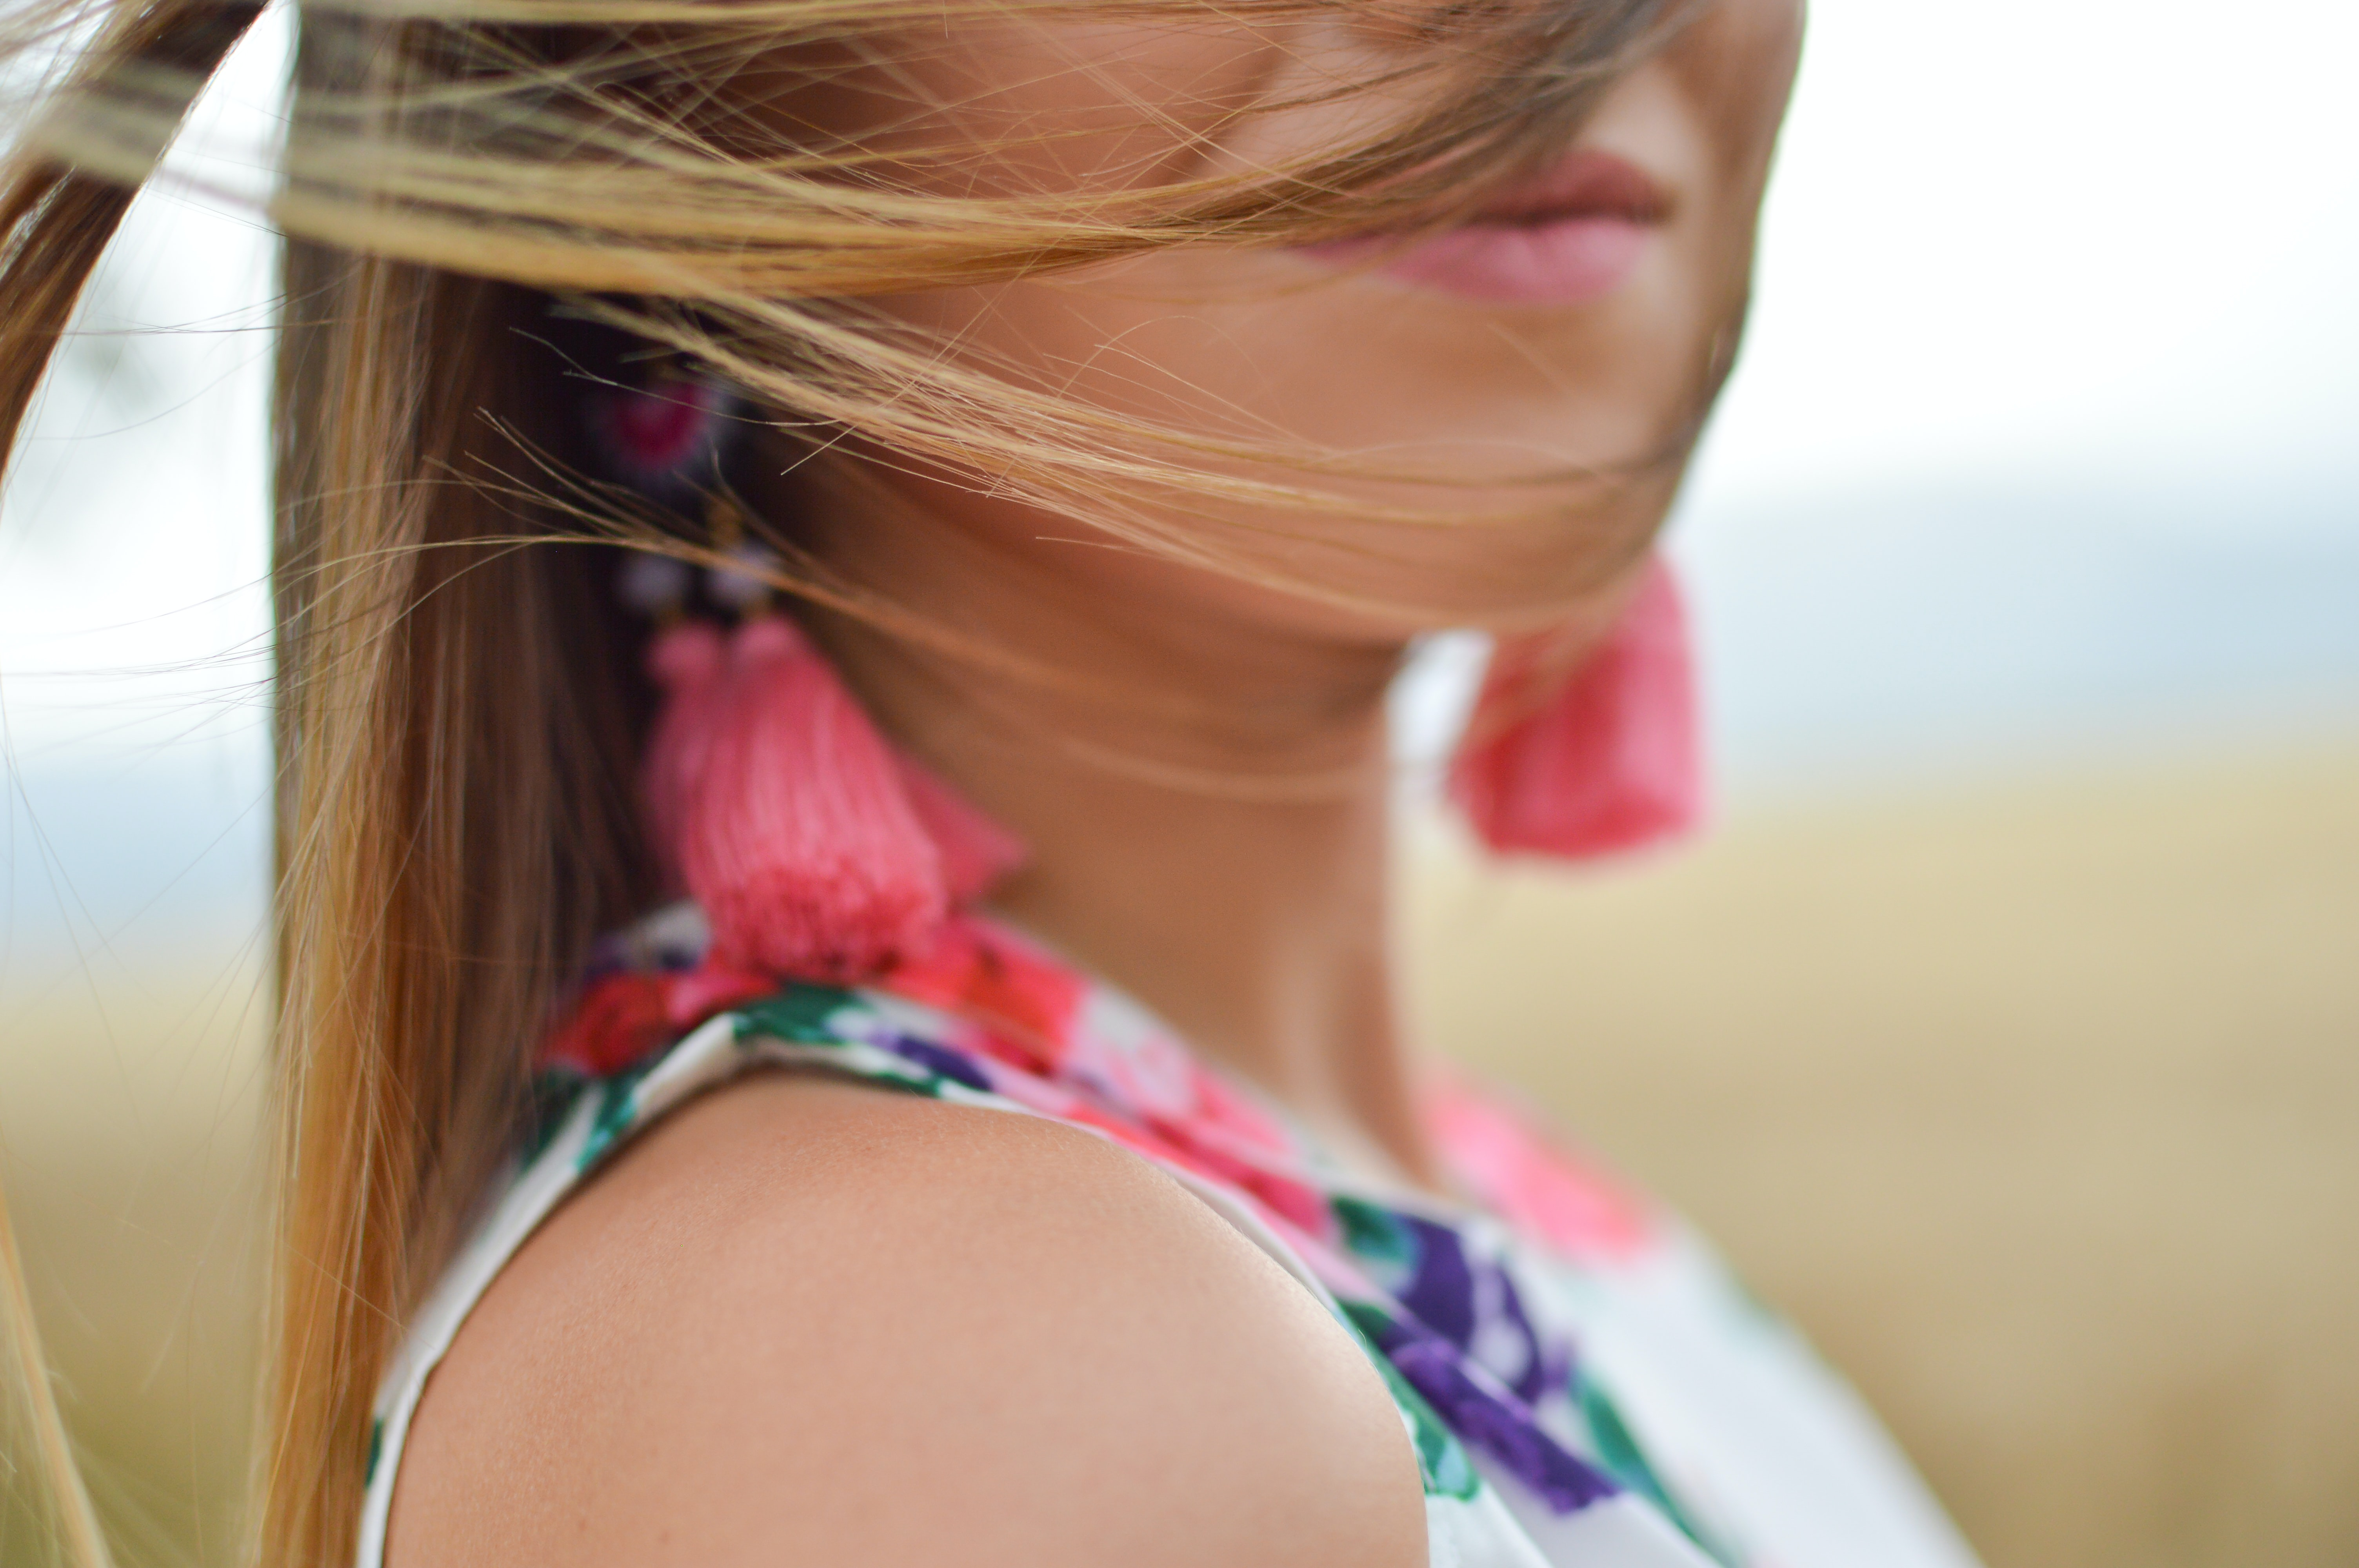 A close-up of a woman with hair over her face and pink fringe earrings